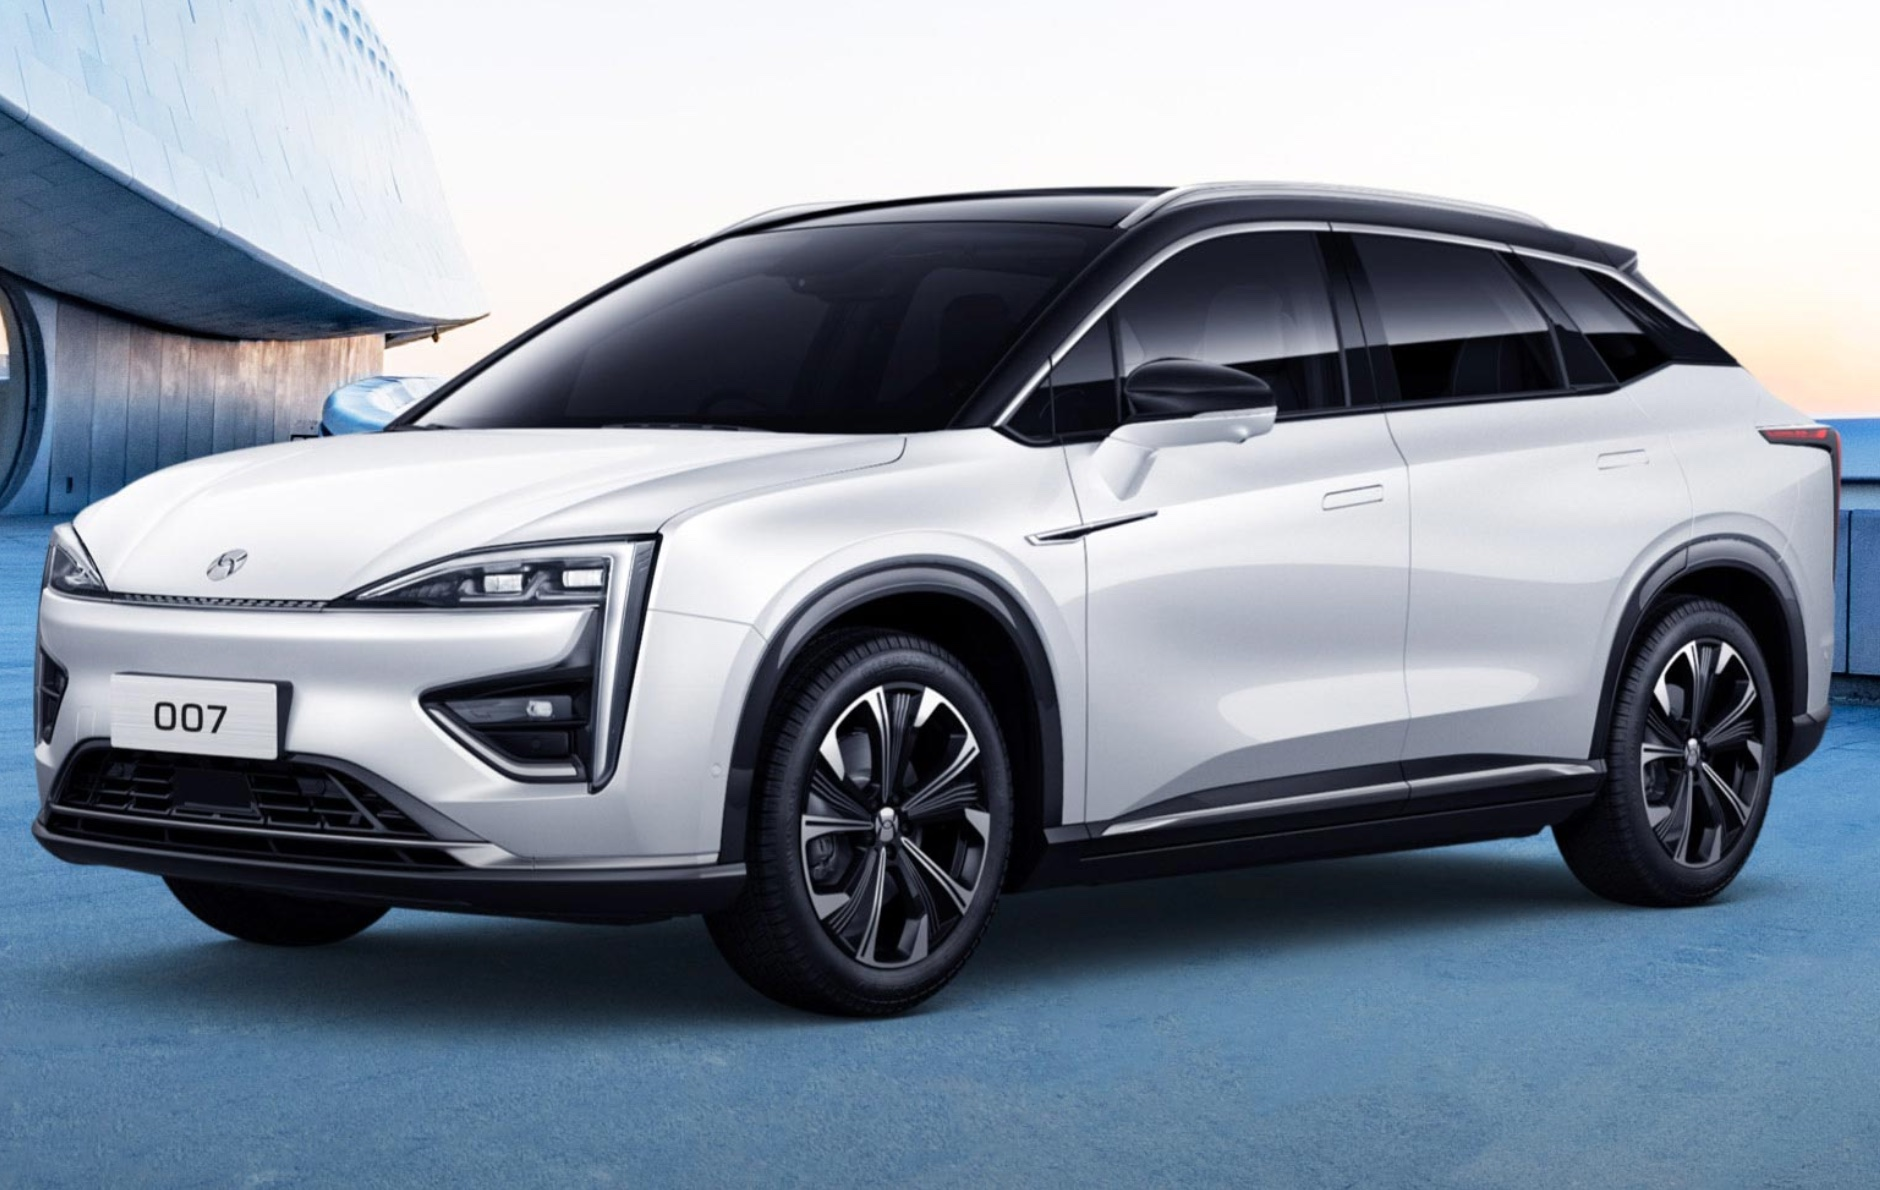 GAC NIO promises to reimburse owners if battery causes vehicle fires-CnTechPost